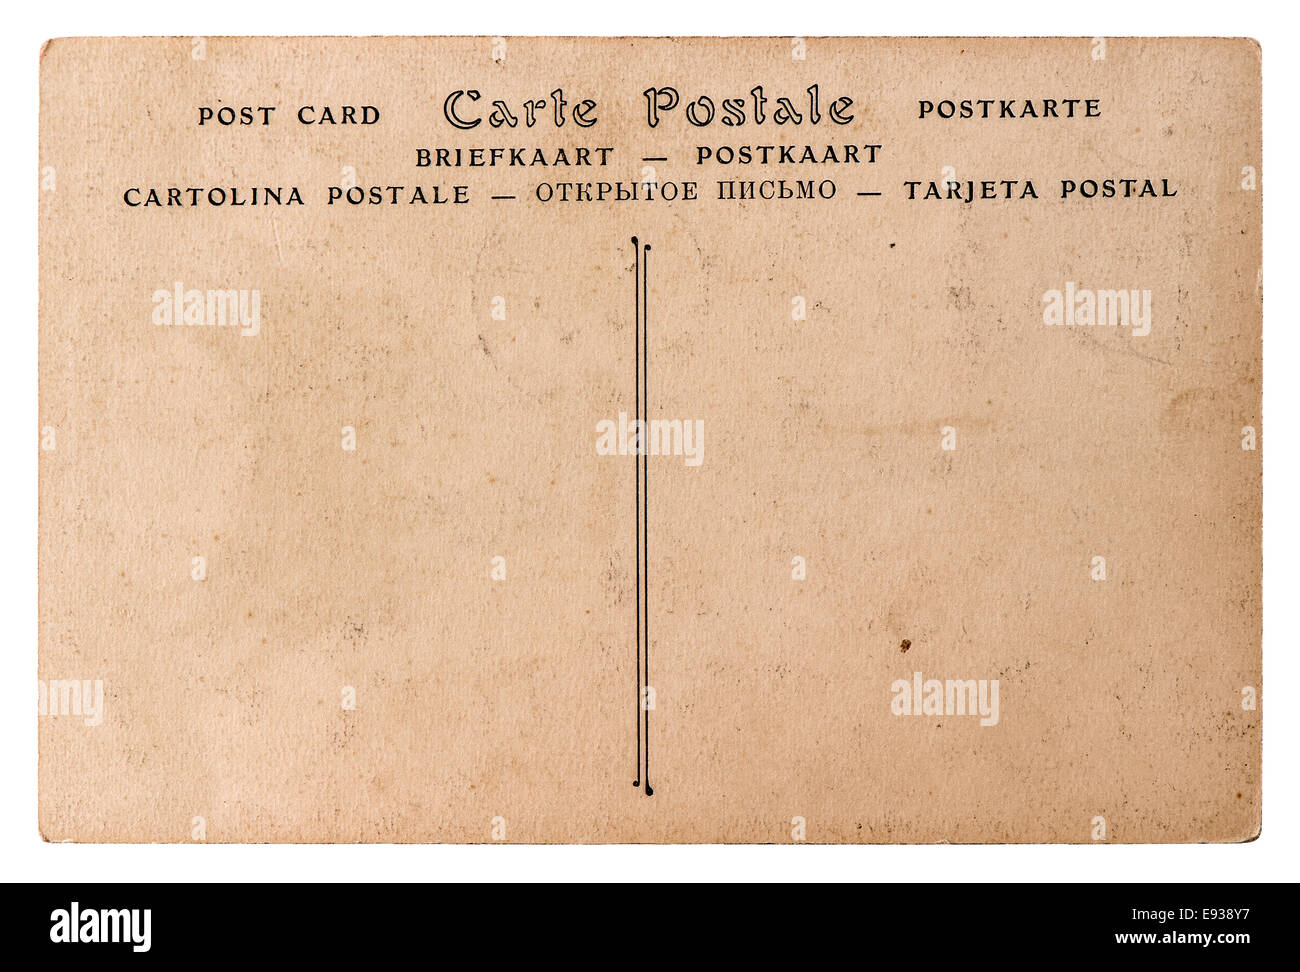 Carte Postale Retro carte postale cut out stock images & pictures - alamy